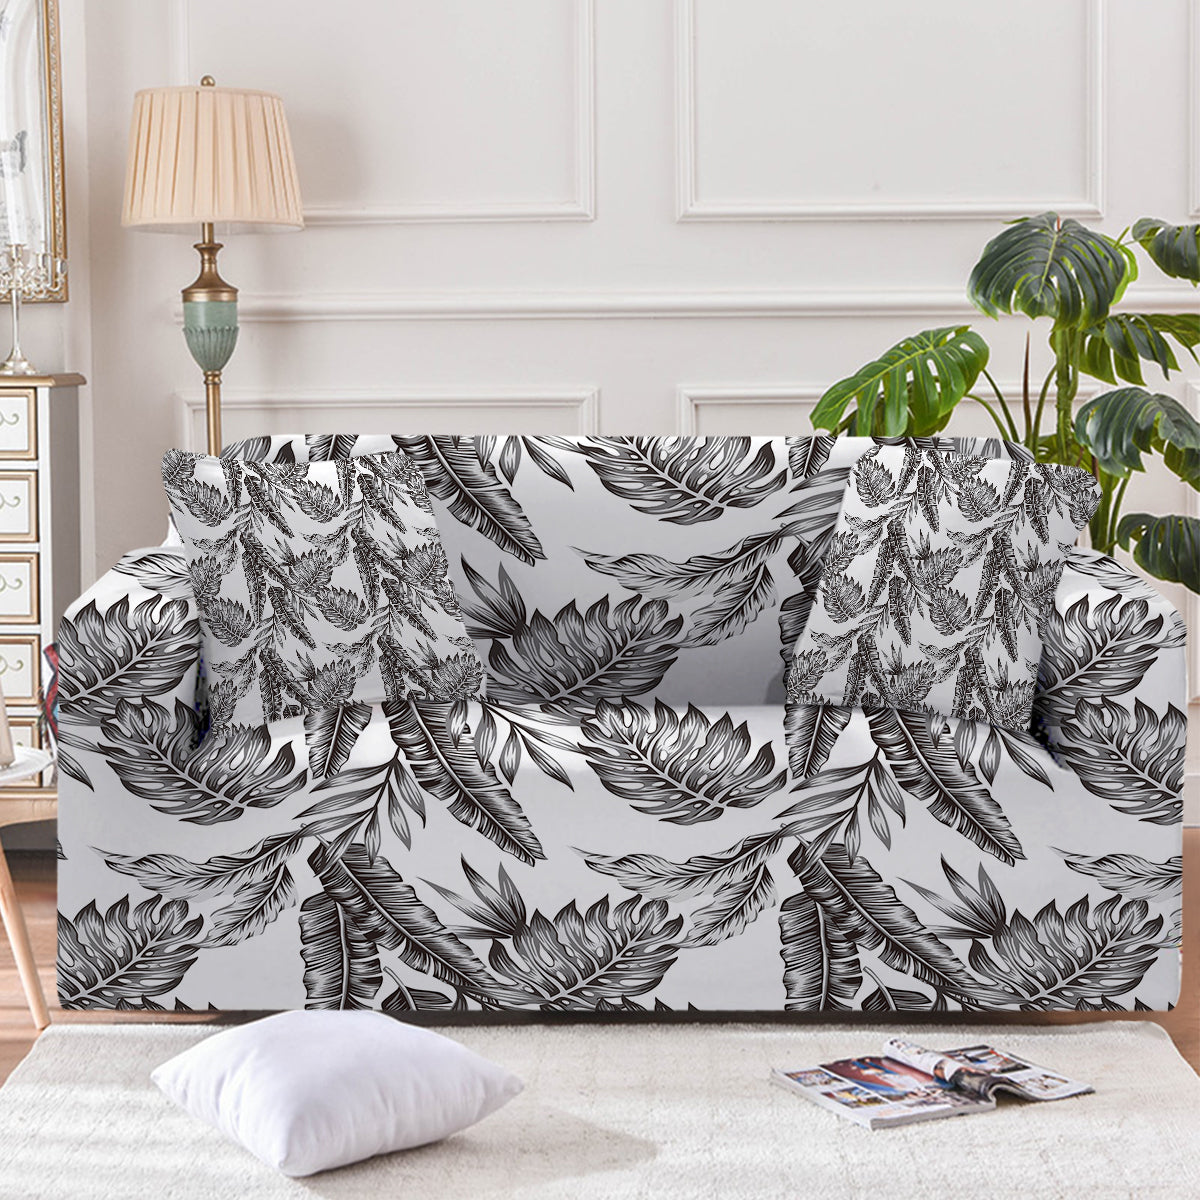 Vintage Tropical Leaves Couch Cover